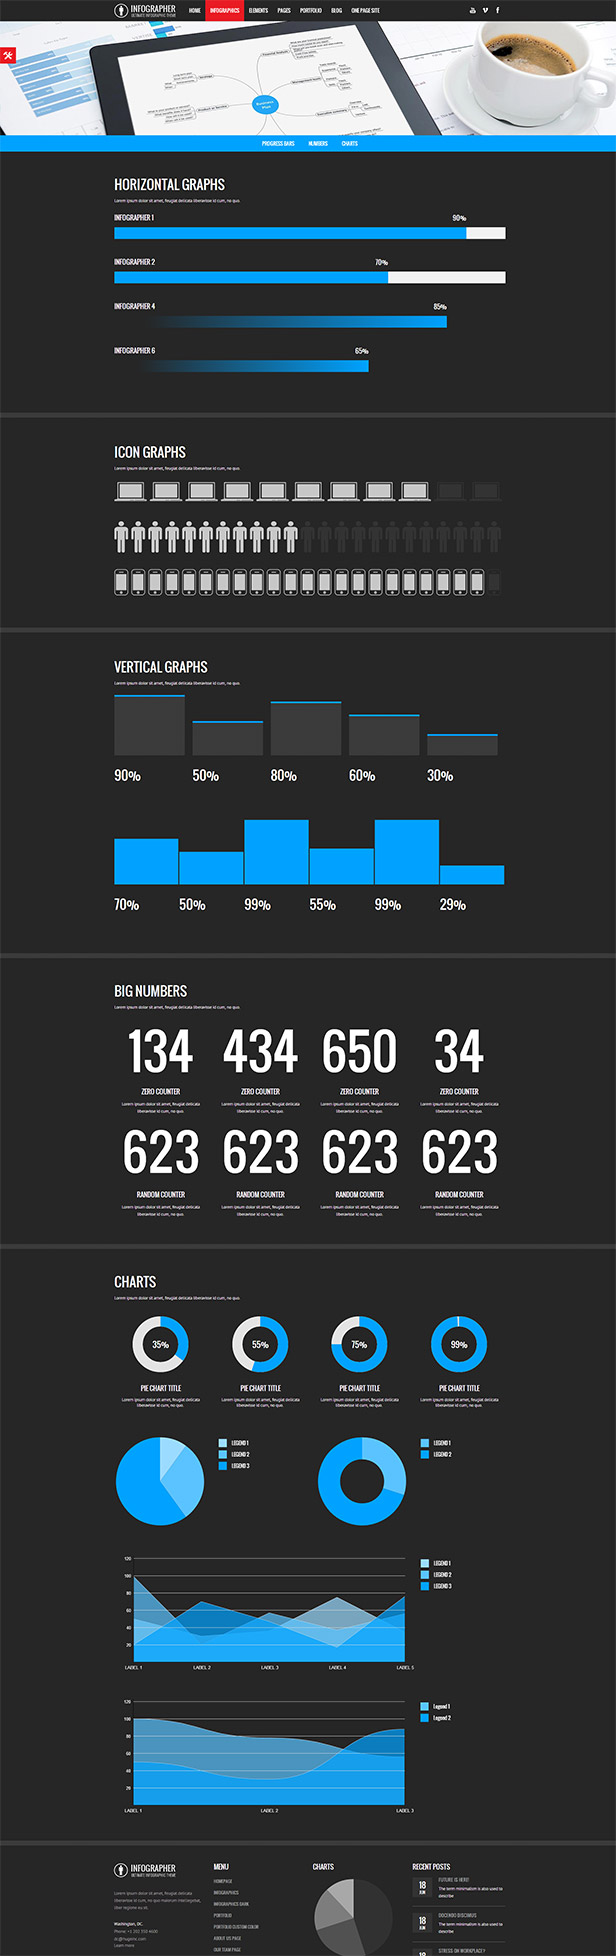 Infographer - Multi-Purpose Infographic Theme - 2